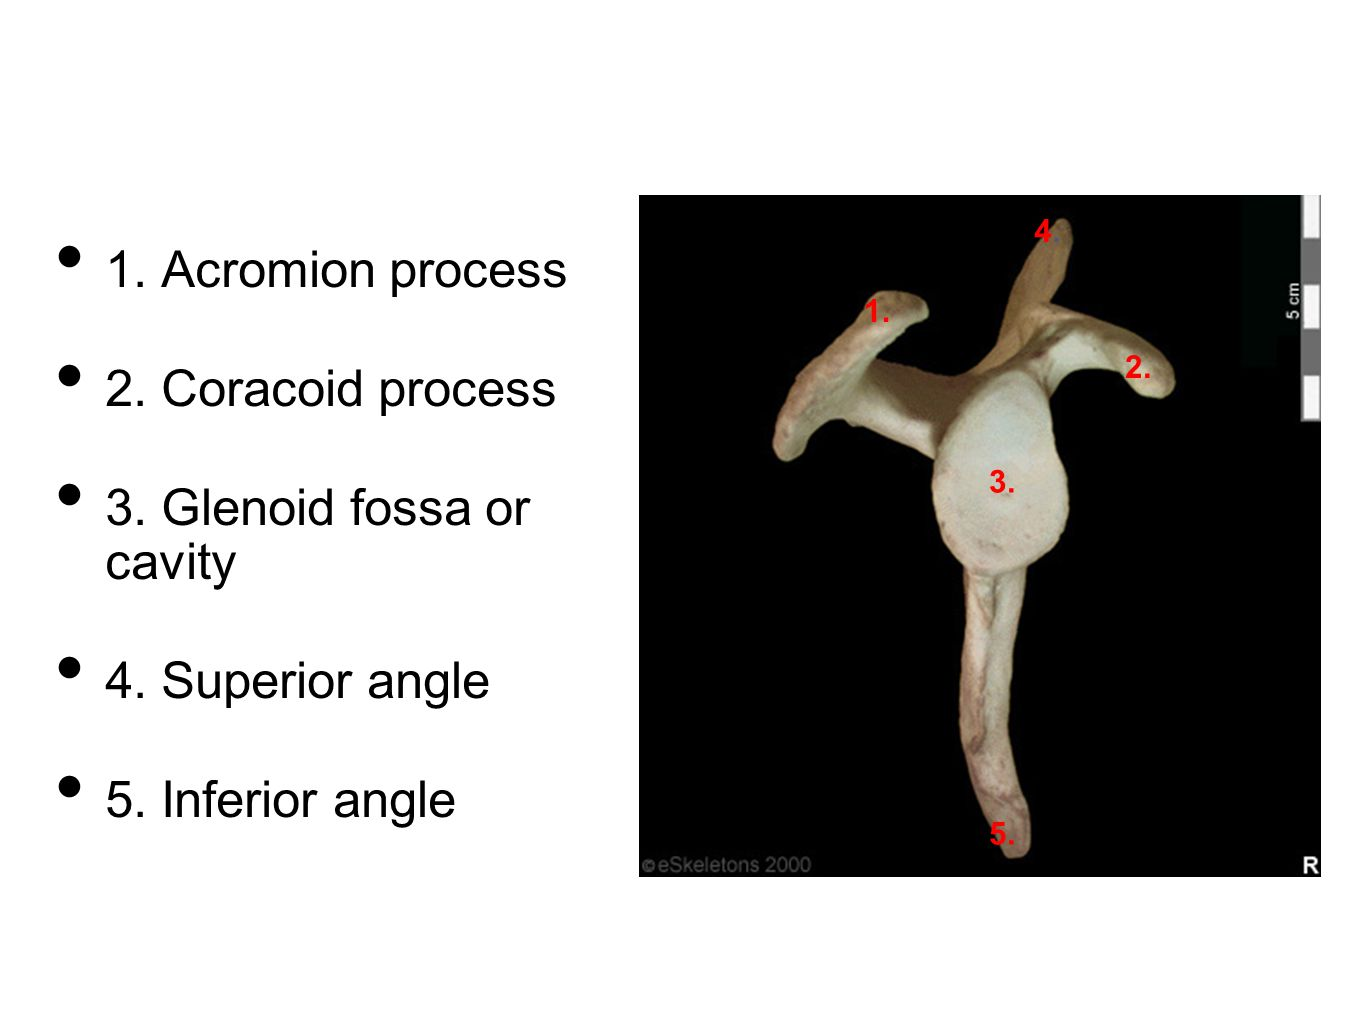 3. Glenoid fossa or cavity